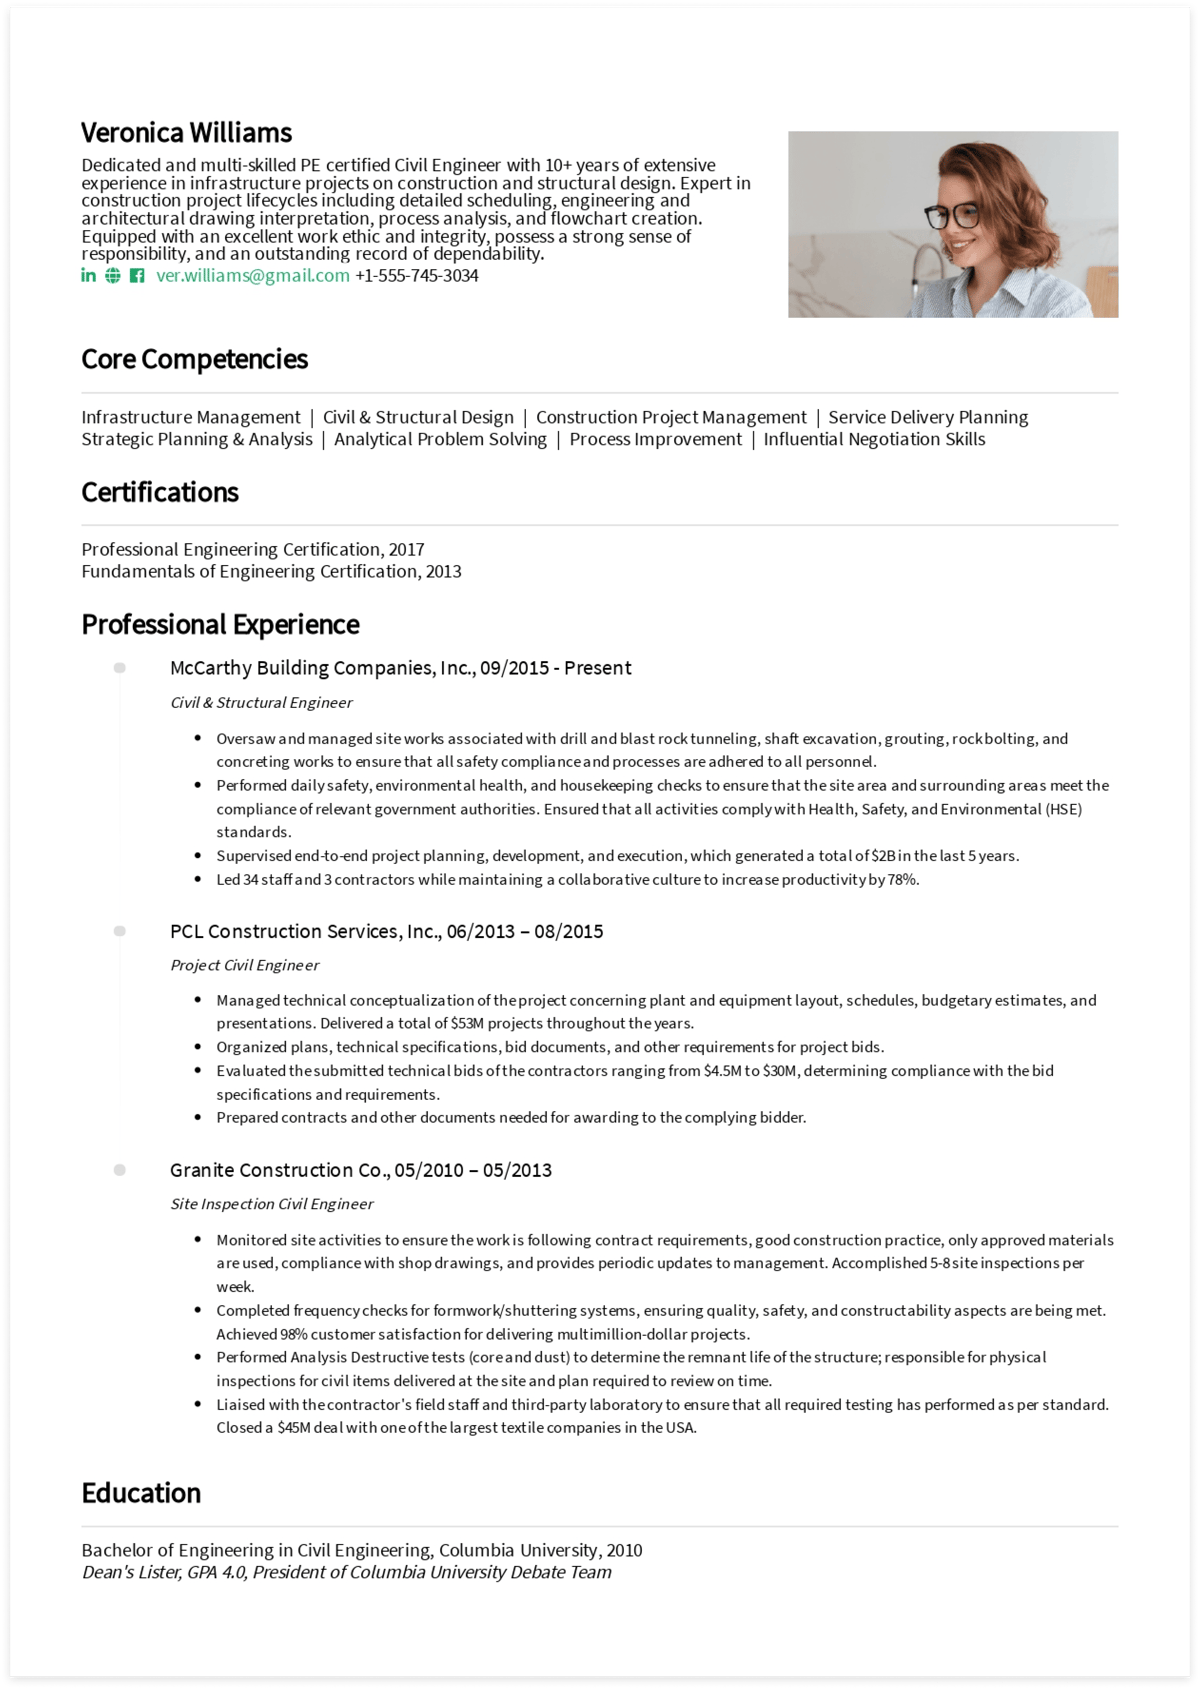 Click to download Veronica's civil engineer resume! Generated via CakeResume.